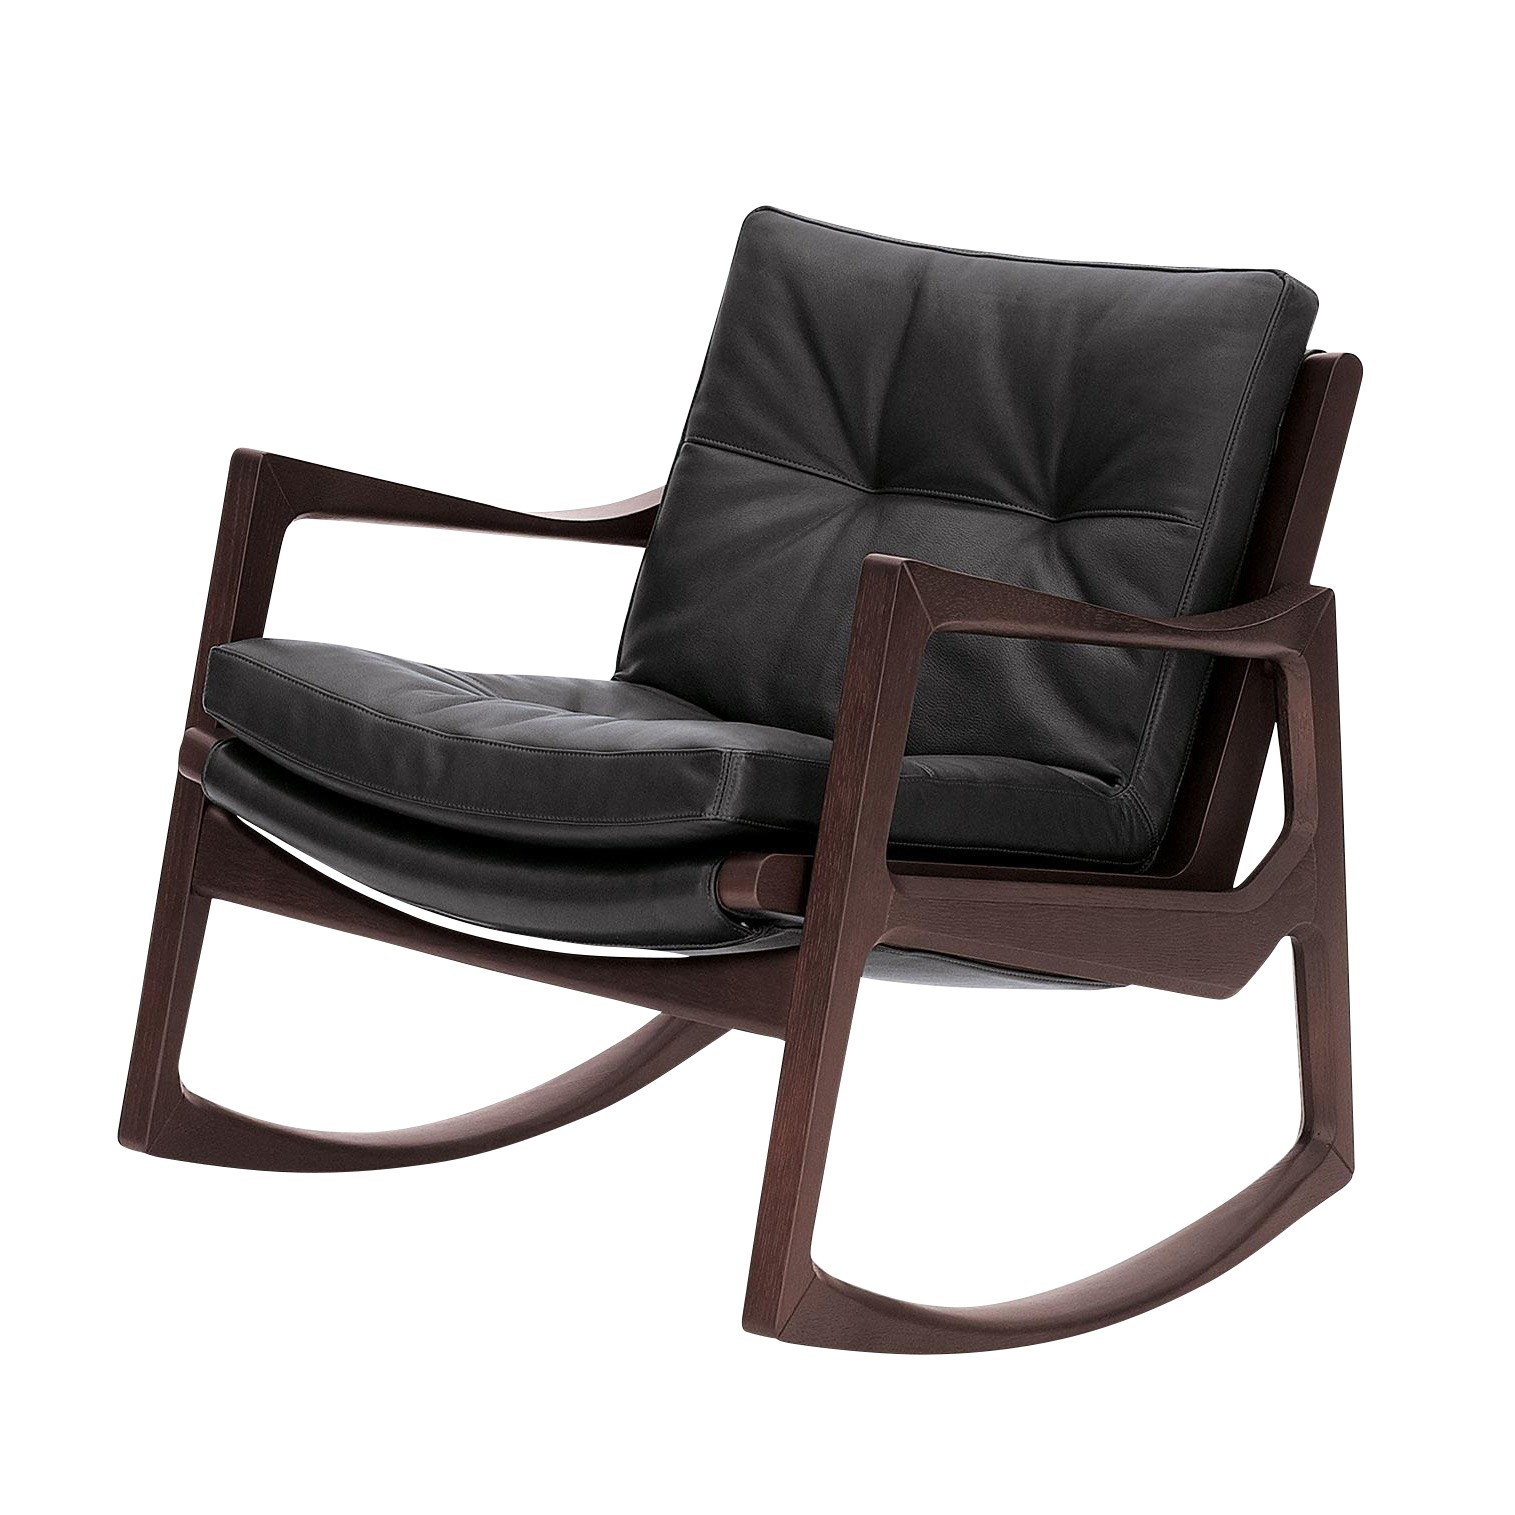 Leather Rocking Chair Euvira Rocking Chair